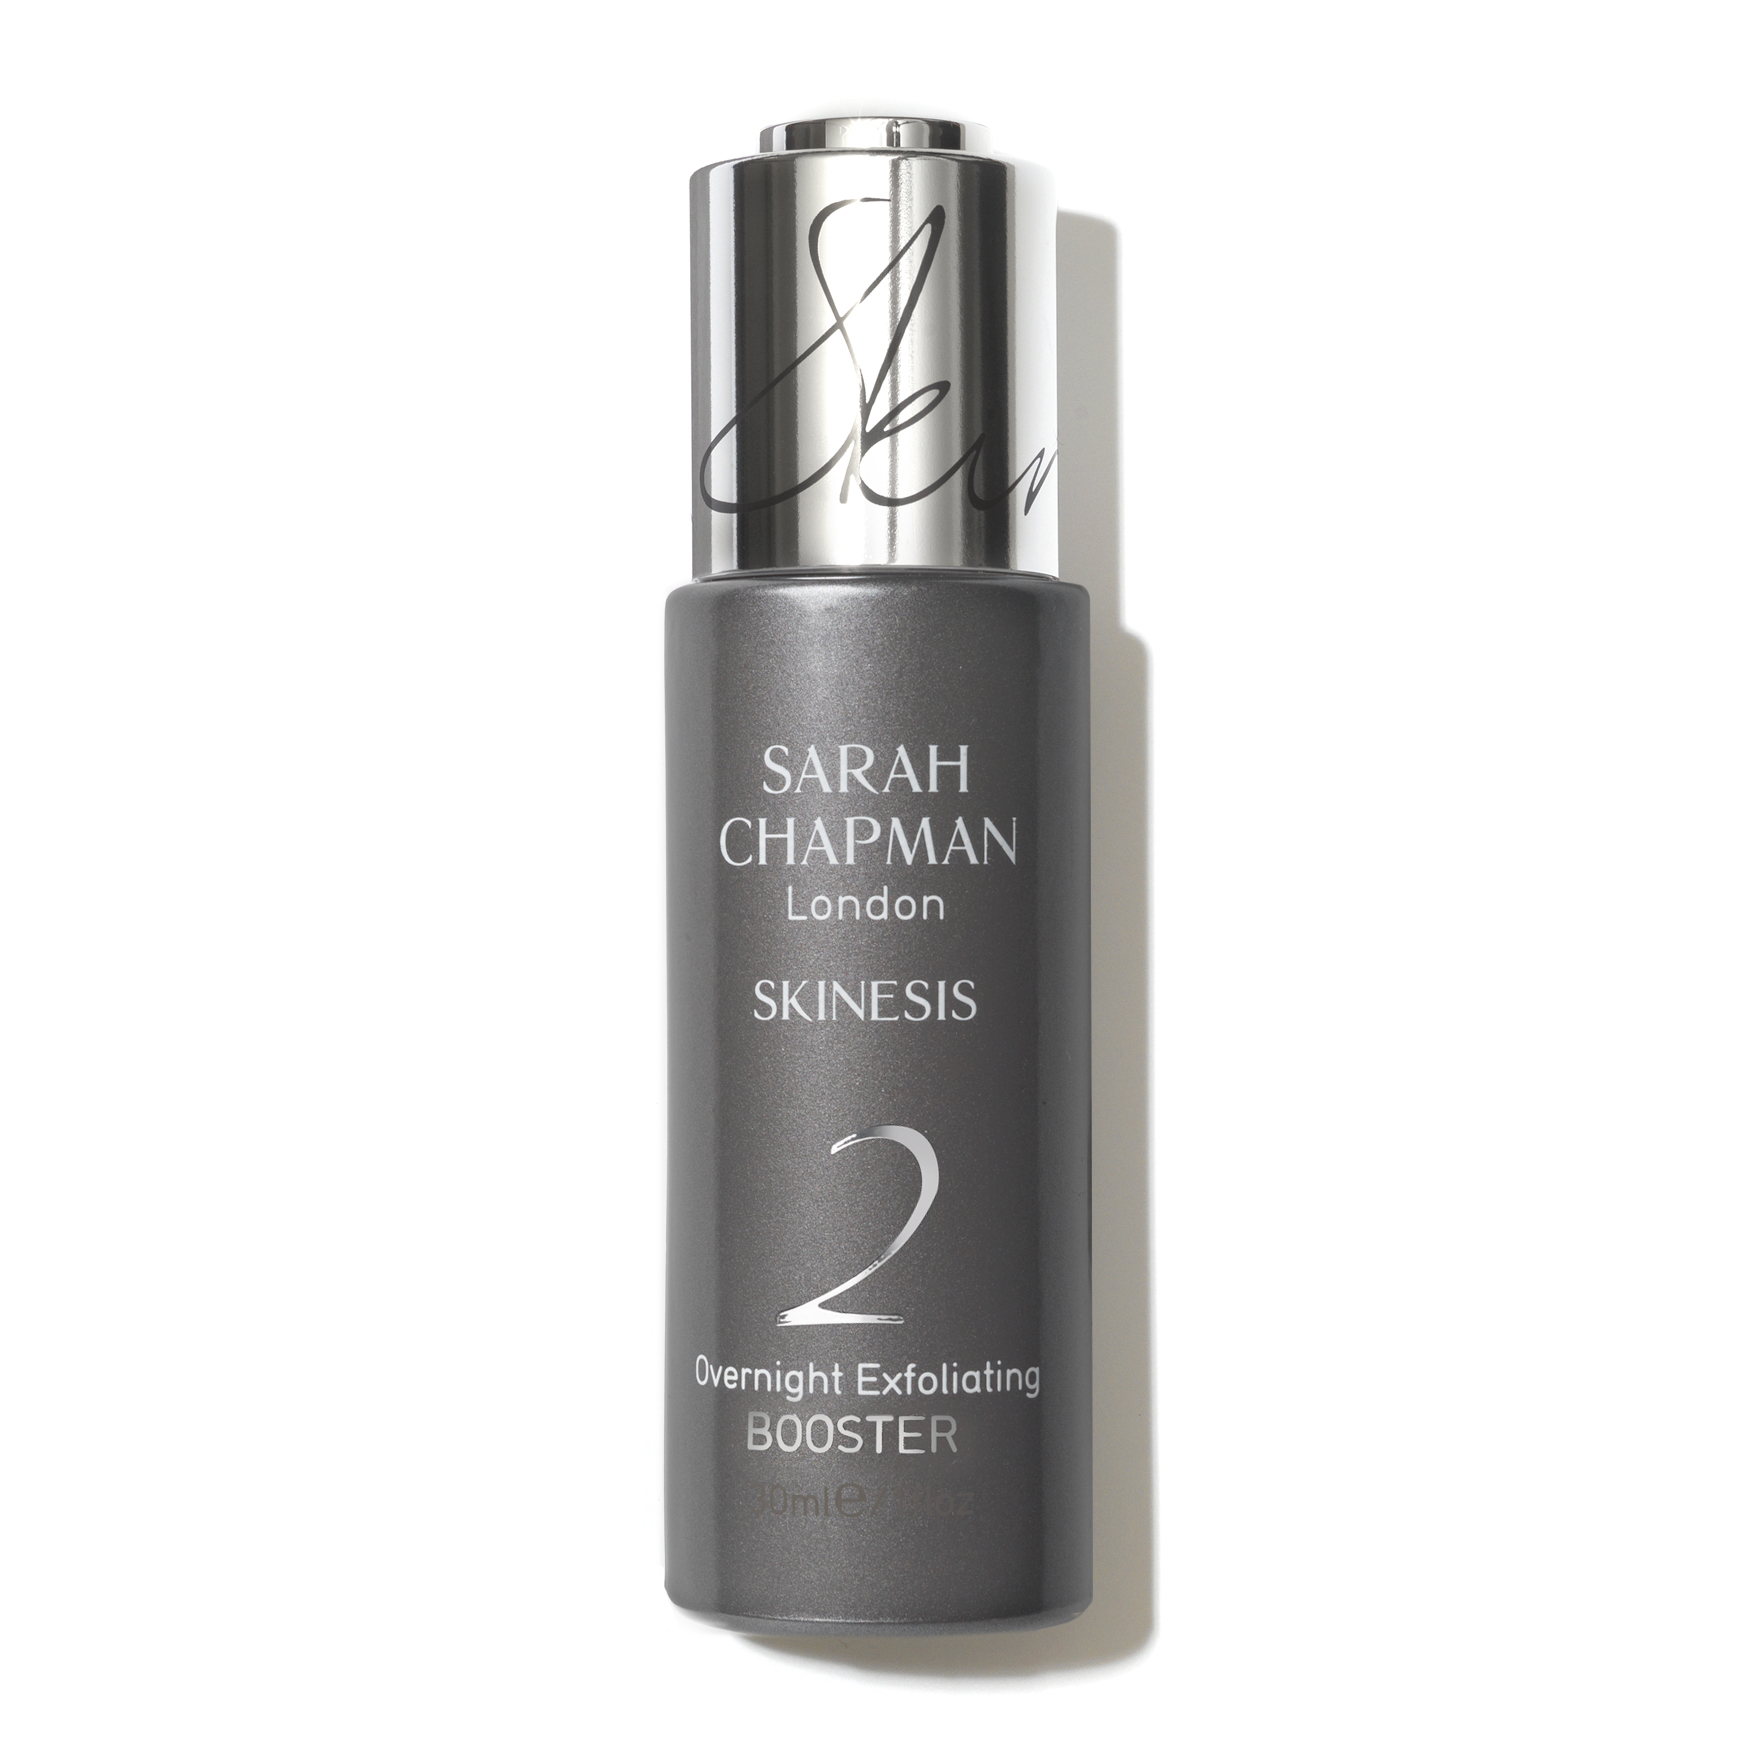 Sarah Chapman Overnight Exfoliating Booster